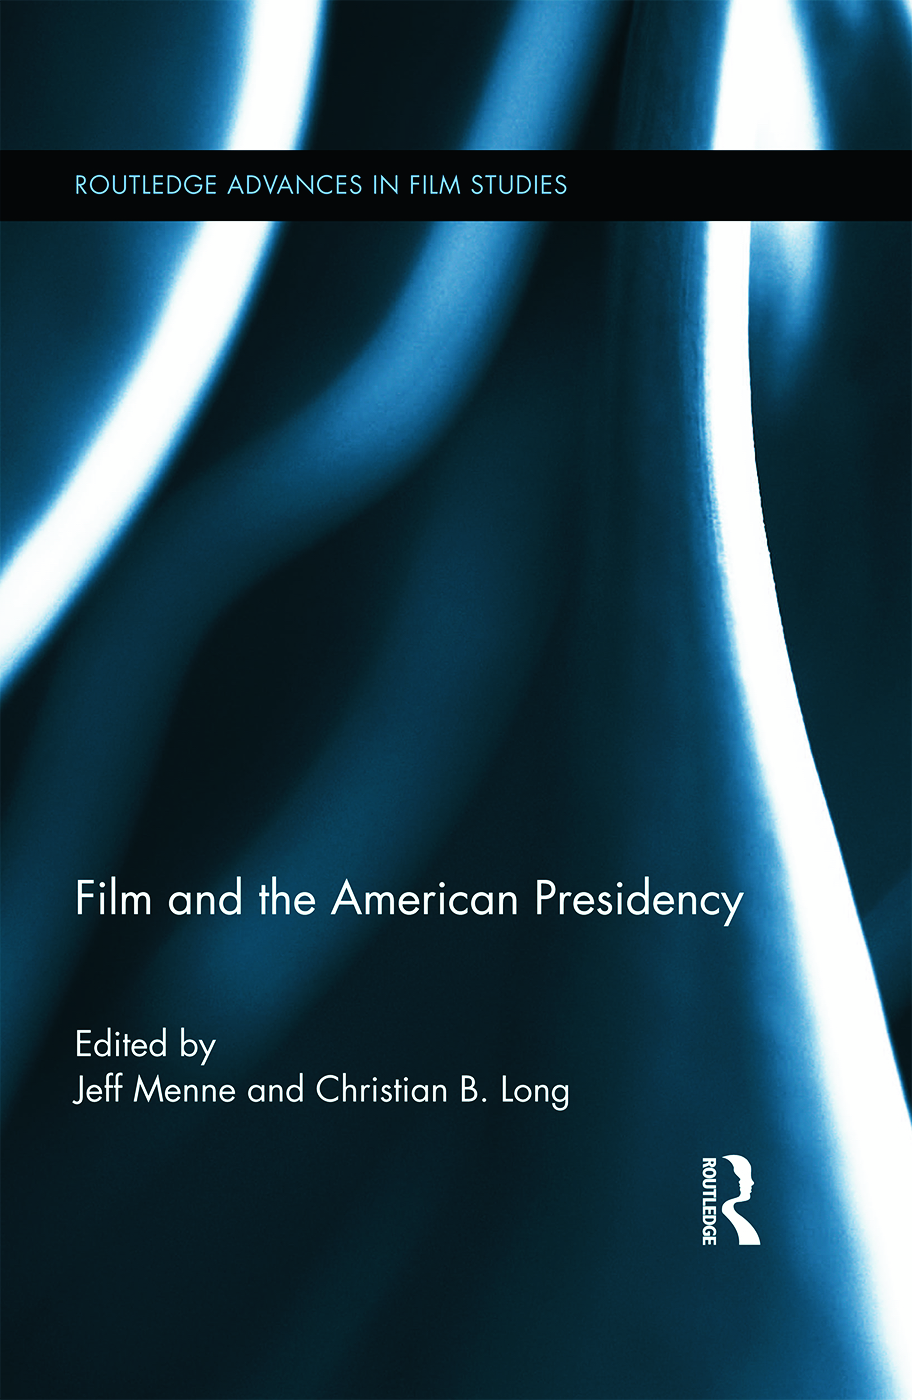 Film and the American Presidency.jpg